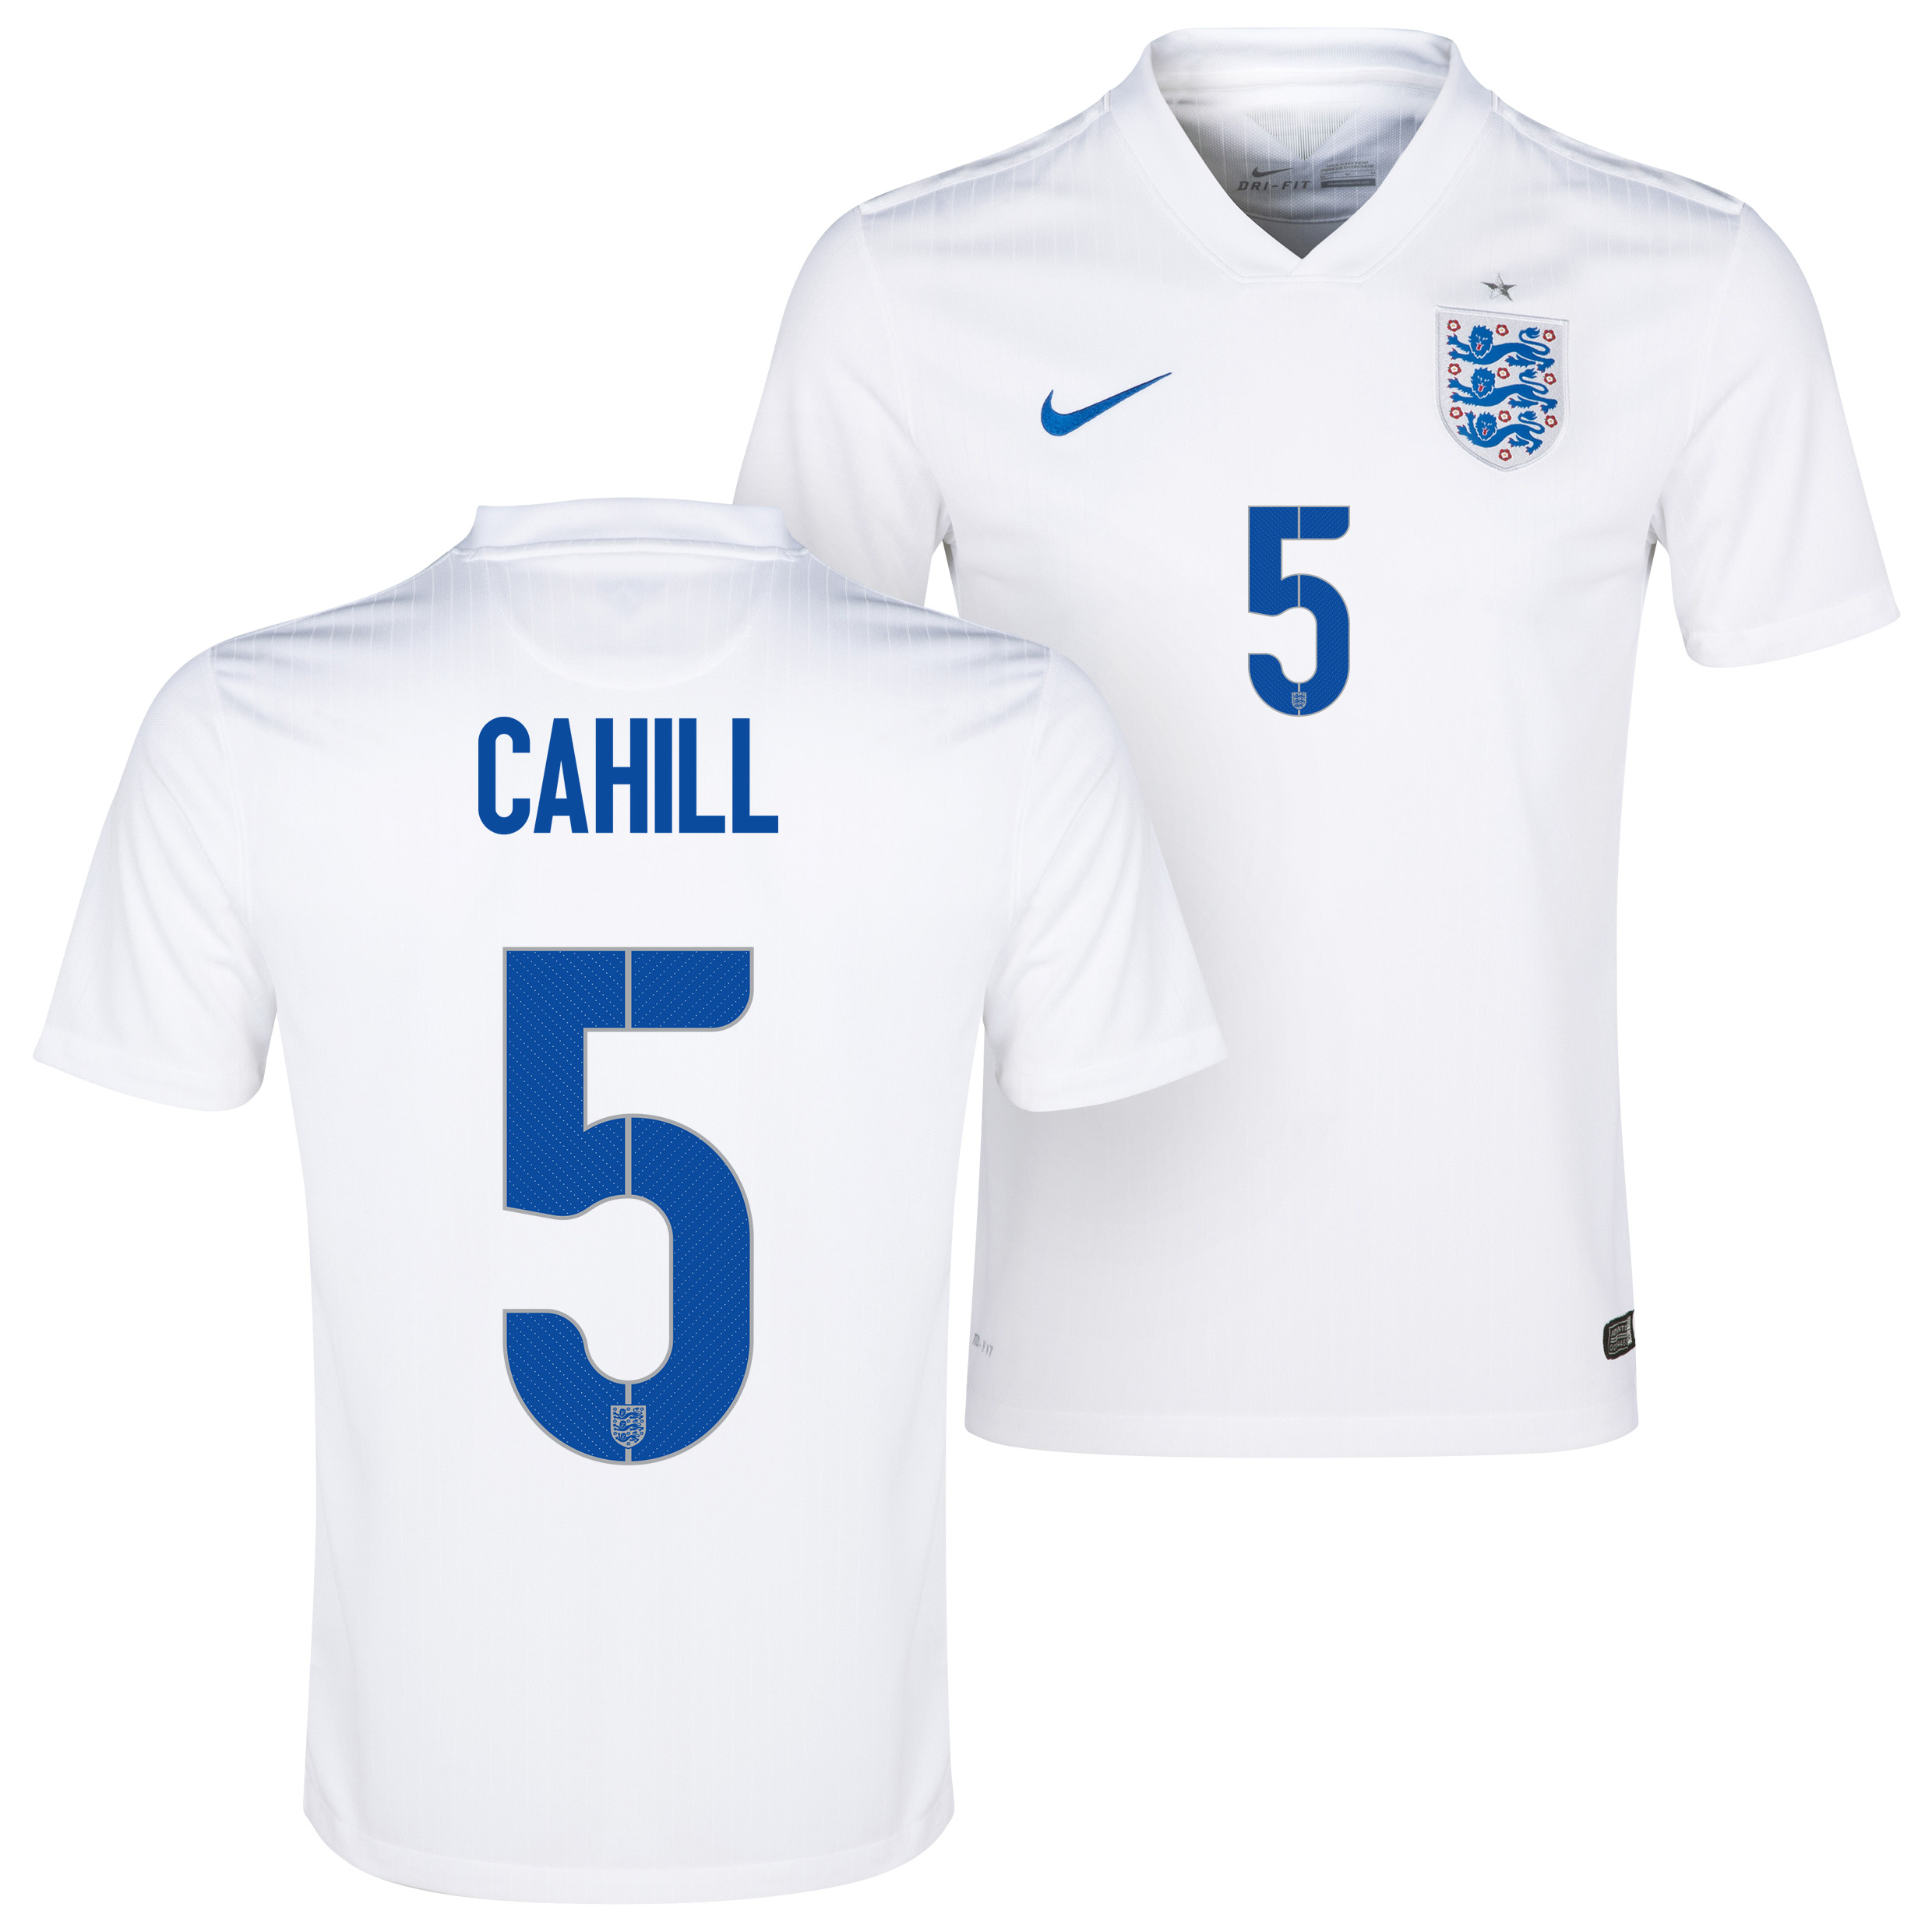 England Home Shirt 2014/15 White with Cahill 5 printing